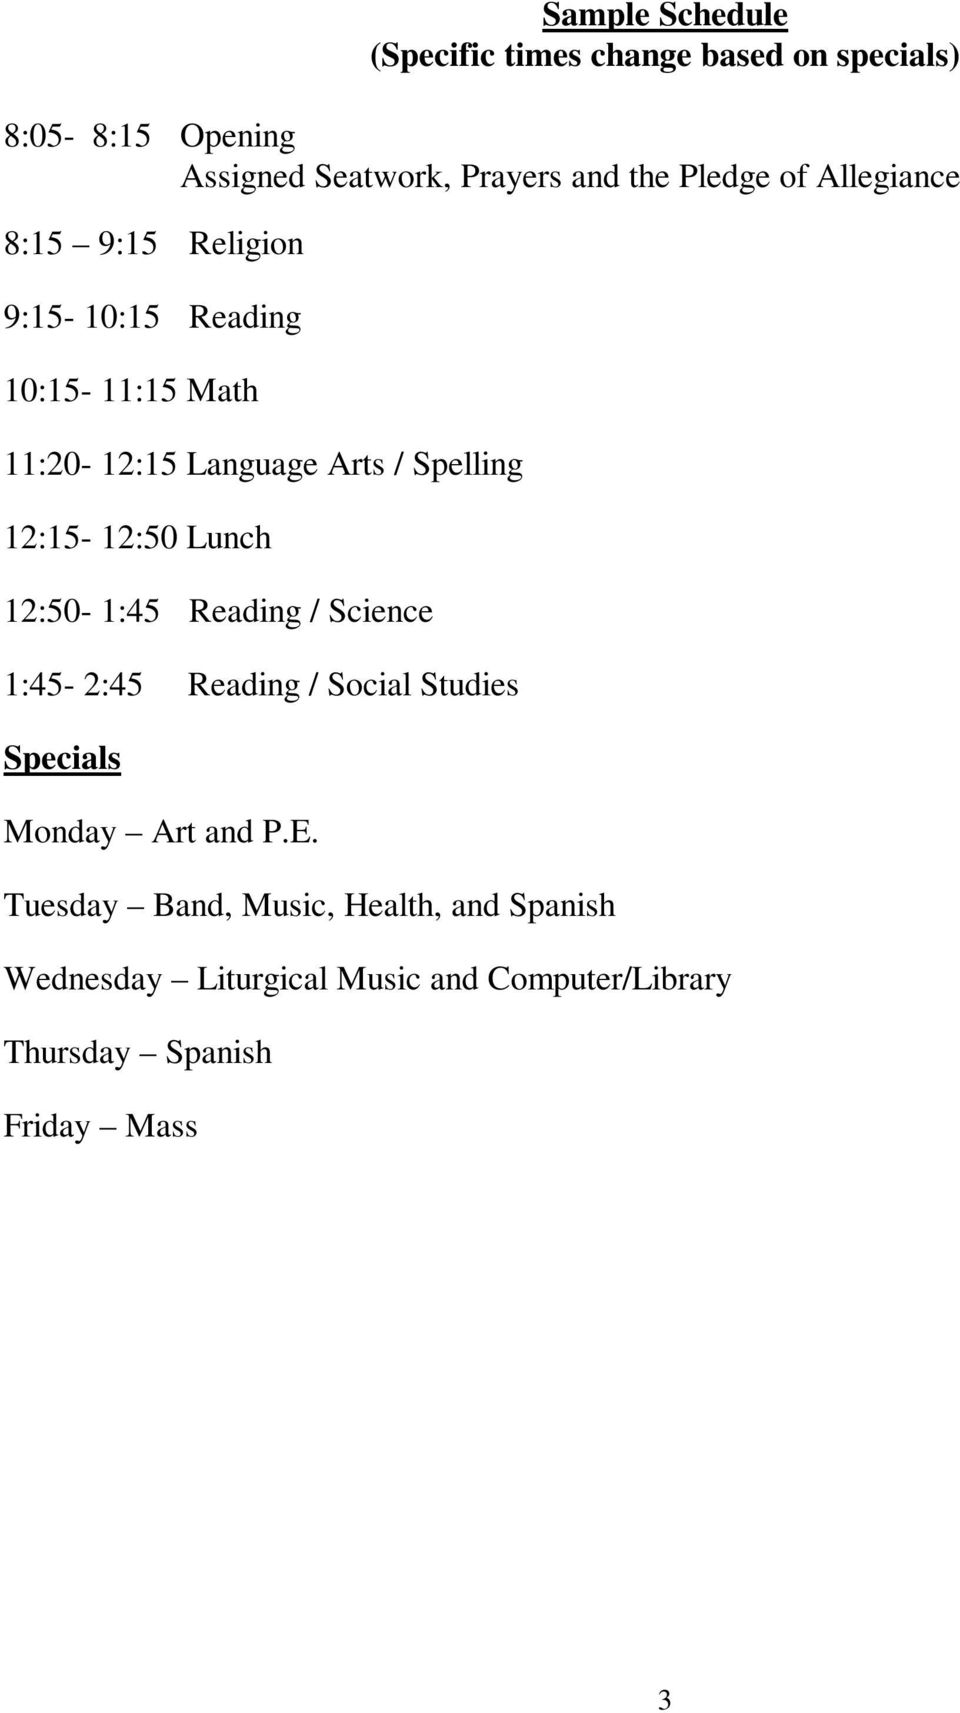 12:15-12:50 Lunch 12:50-1:45 Reading / Science 1:45-2:45 Reading / Social Studies Specials Monday Art and P.E.